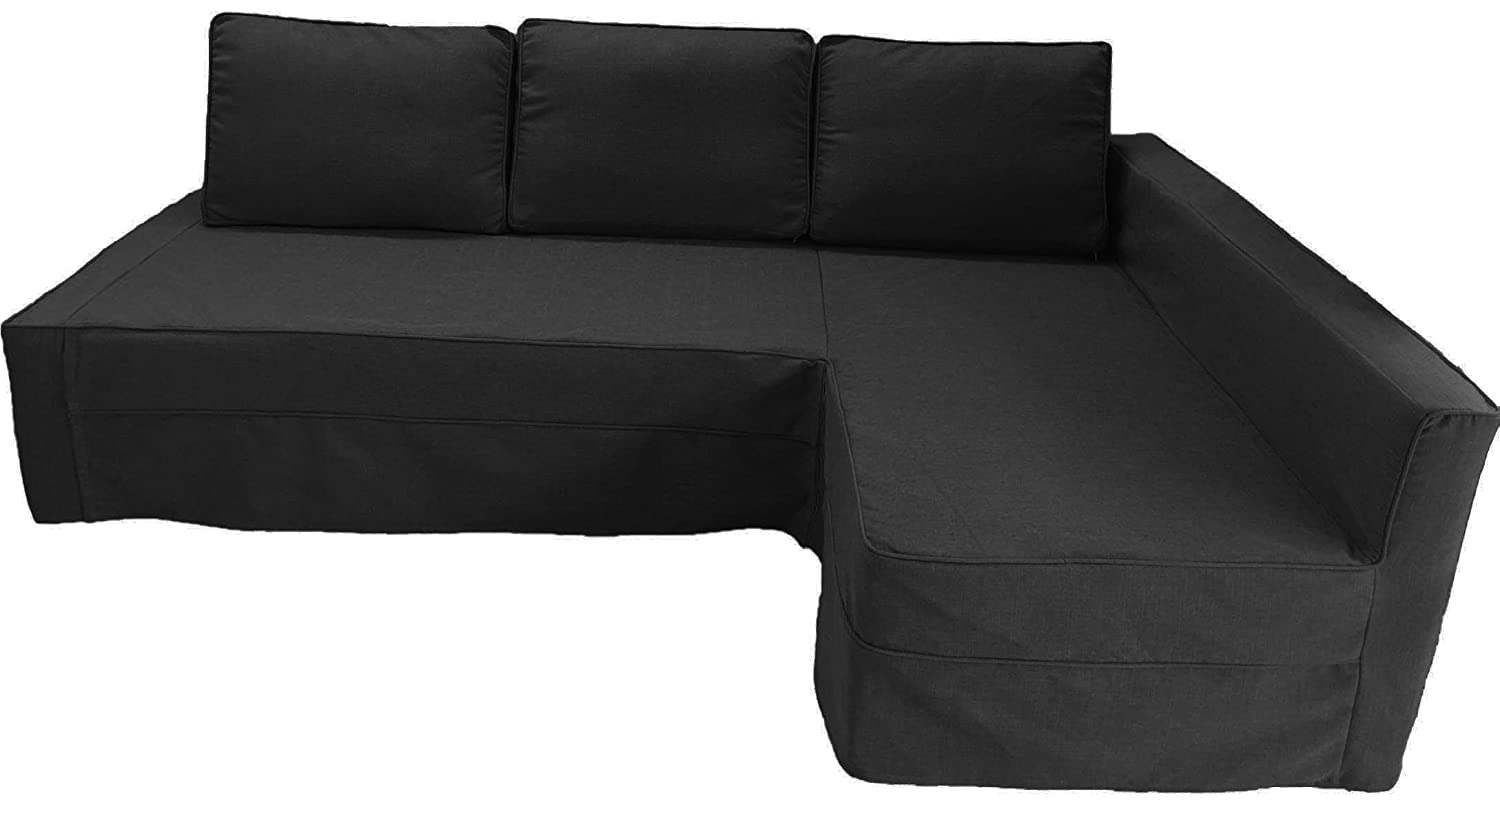 Custom made cover fits ikea friheten sofa bed with chaise hidabed - Amazon Com The Dark Gray Friheten Thick Cotton Sofa Cover Replacement Is Custom Made For Ikea Friheten Sofa Bed Or Corner Or Sectional Slipcover